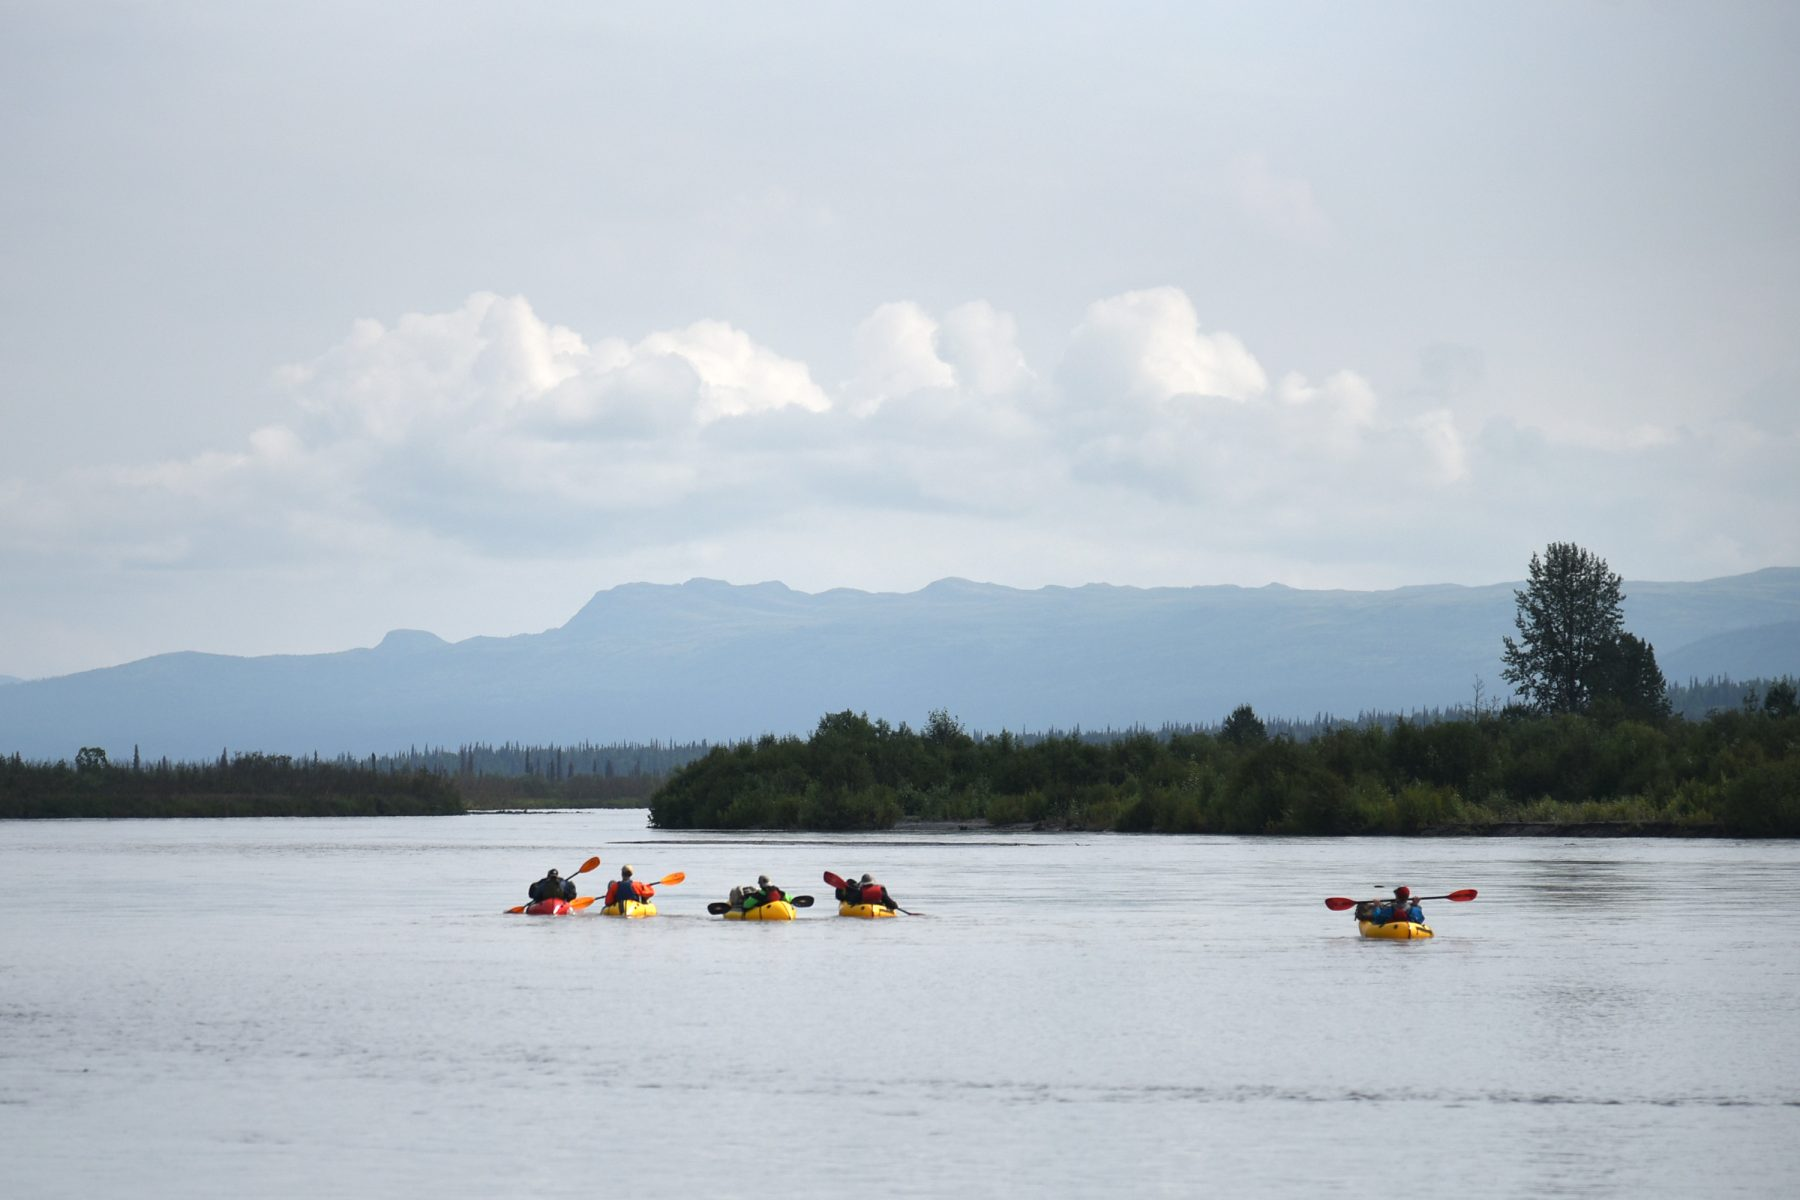 Packrafting the Tokositna